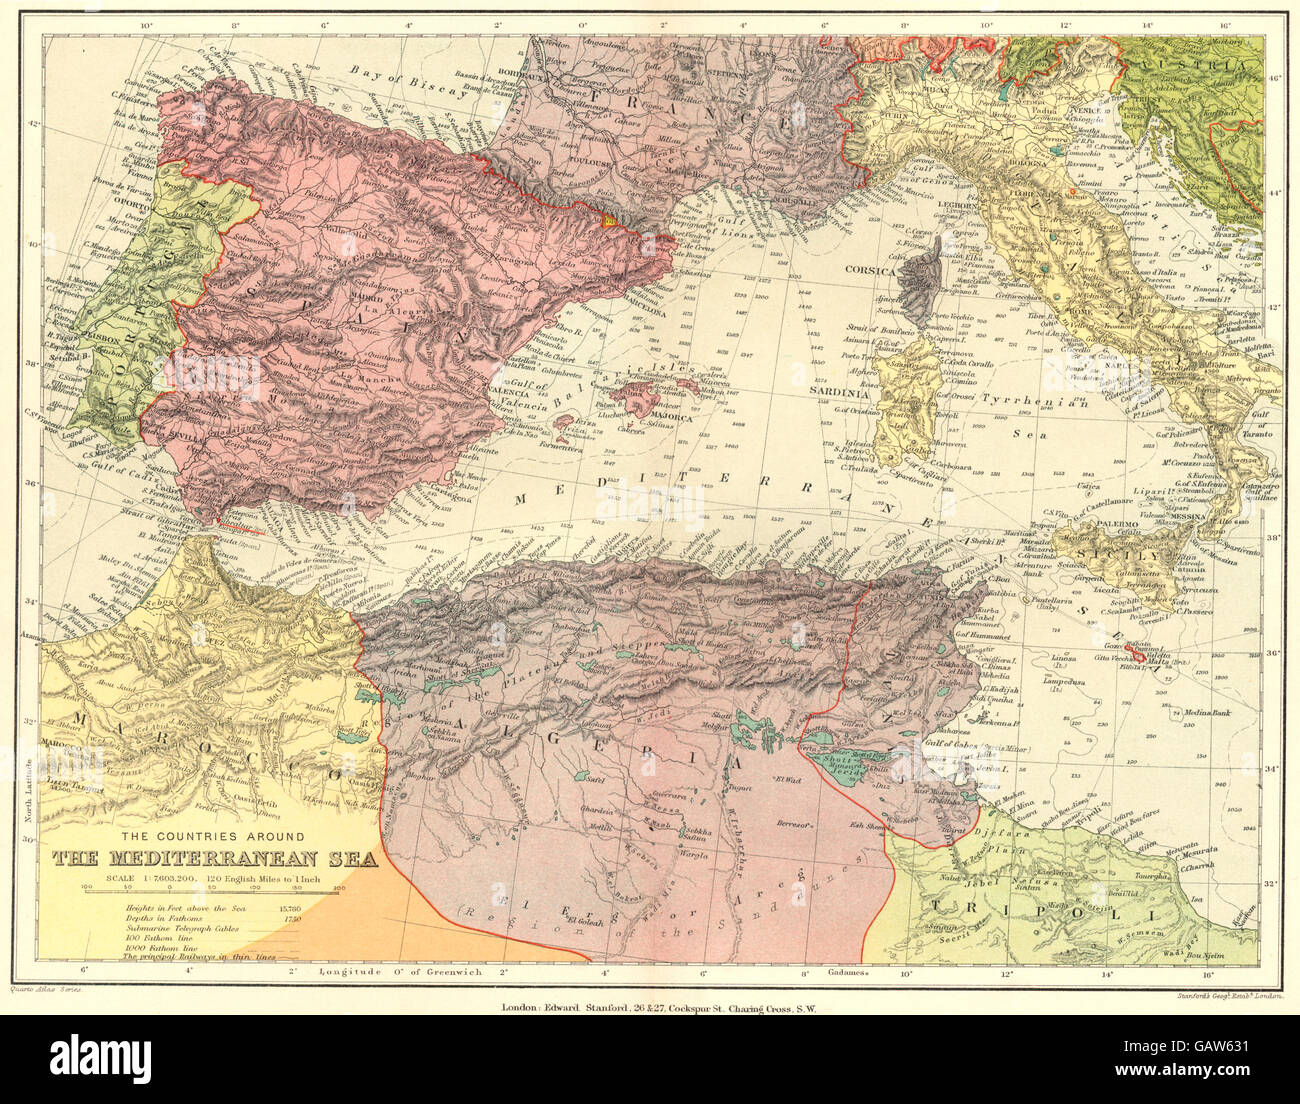 Map Of Spain Portugal And Italy.Western Mediterranean Spain Portugal Morocco Algeria Italy Stock